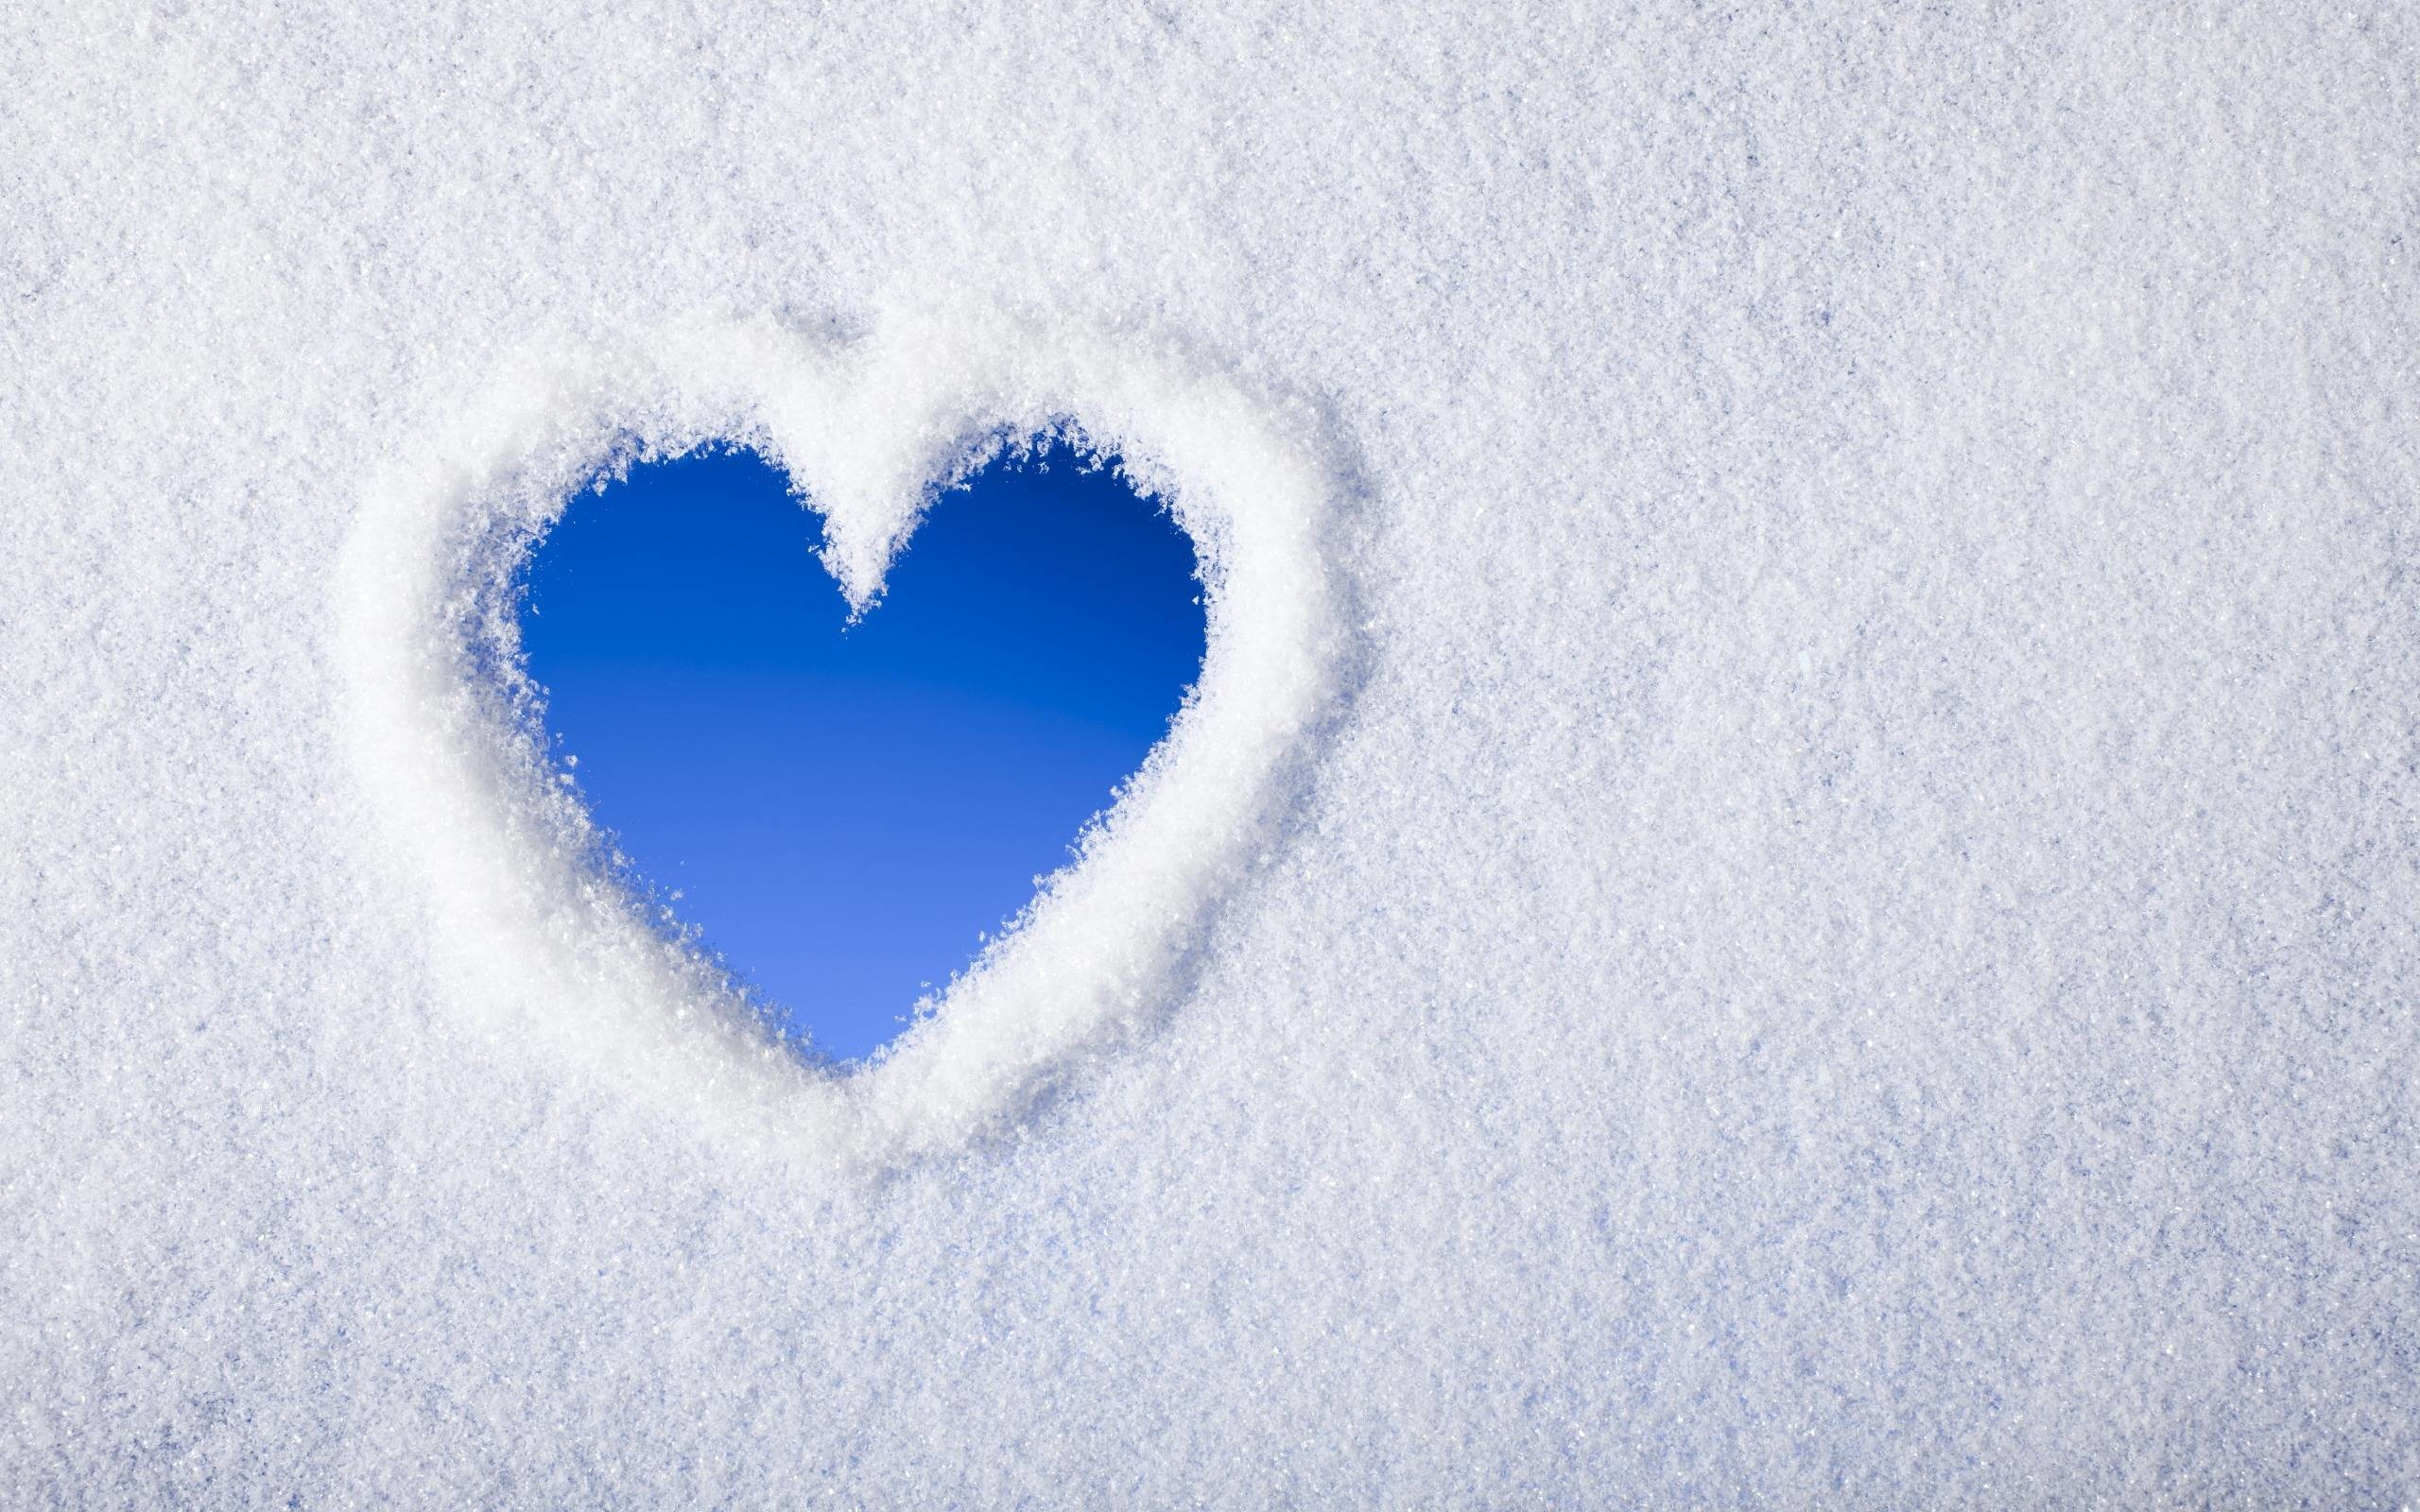 Blue Heart Backgrounds, wallpaper, Blue Heart Backgrounds hd .